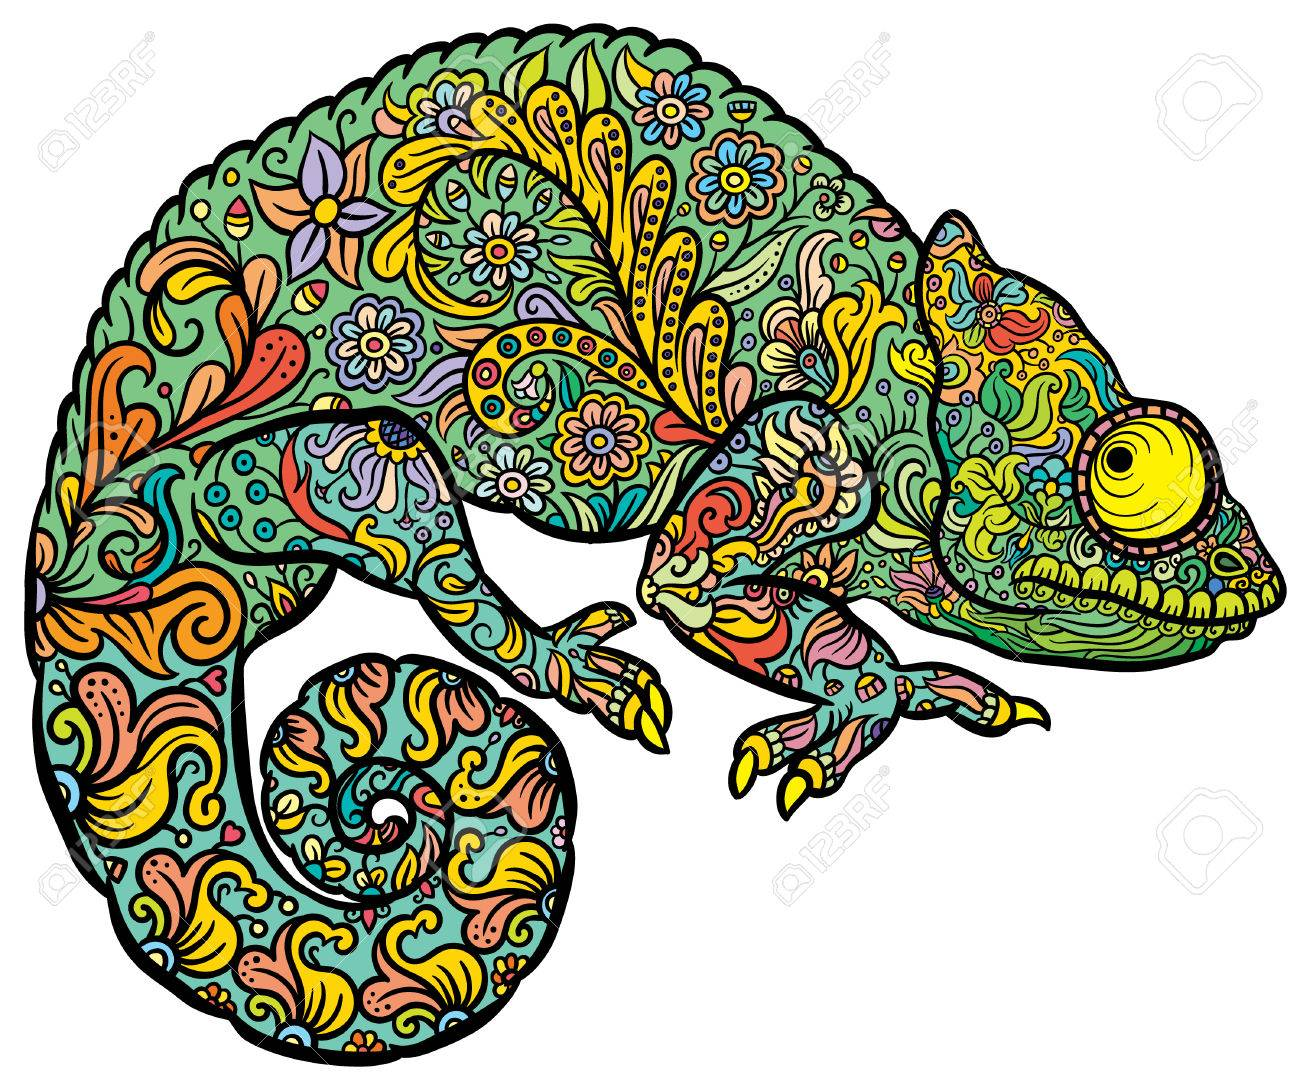 Chameleon Style Zentangle Stylized Multi Coloured Chameleon Hand Drawn Reptile